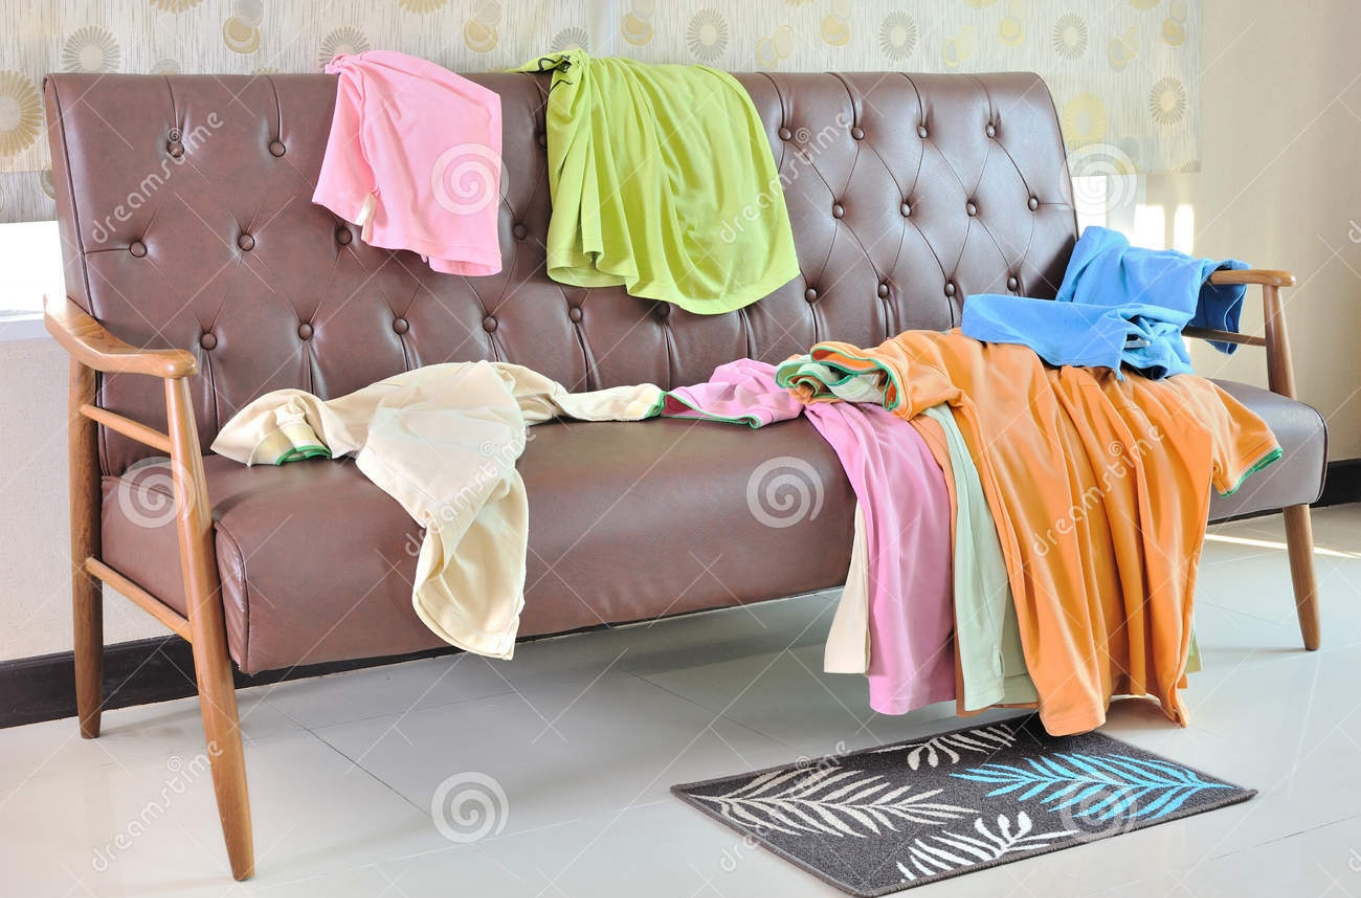 messy-clothes-scattered-sofa-room-living-38567897.jpg